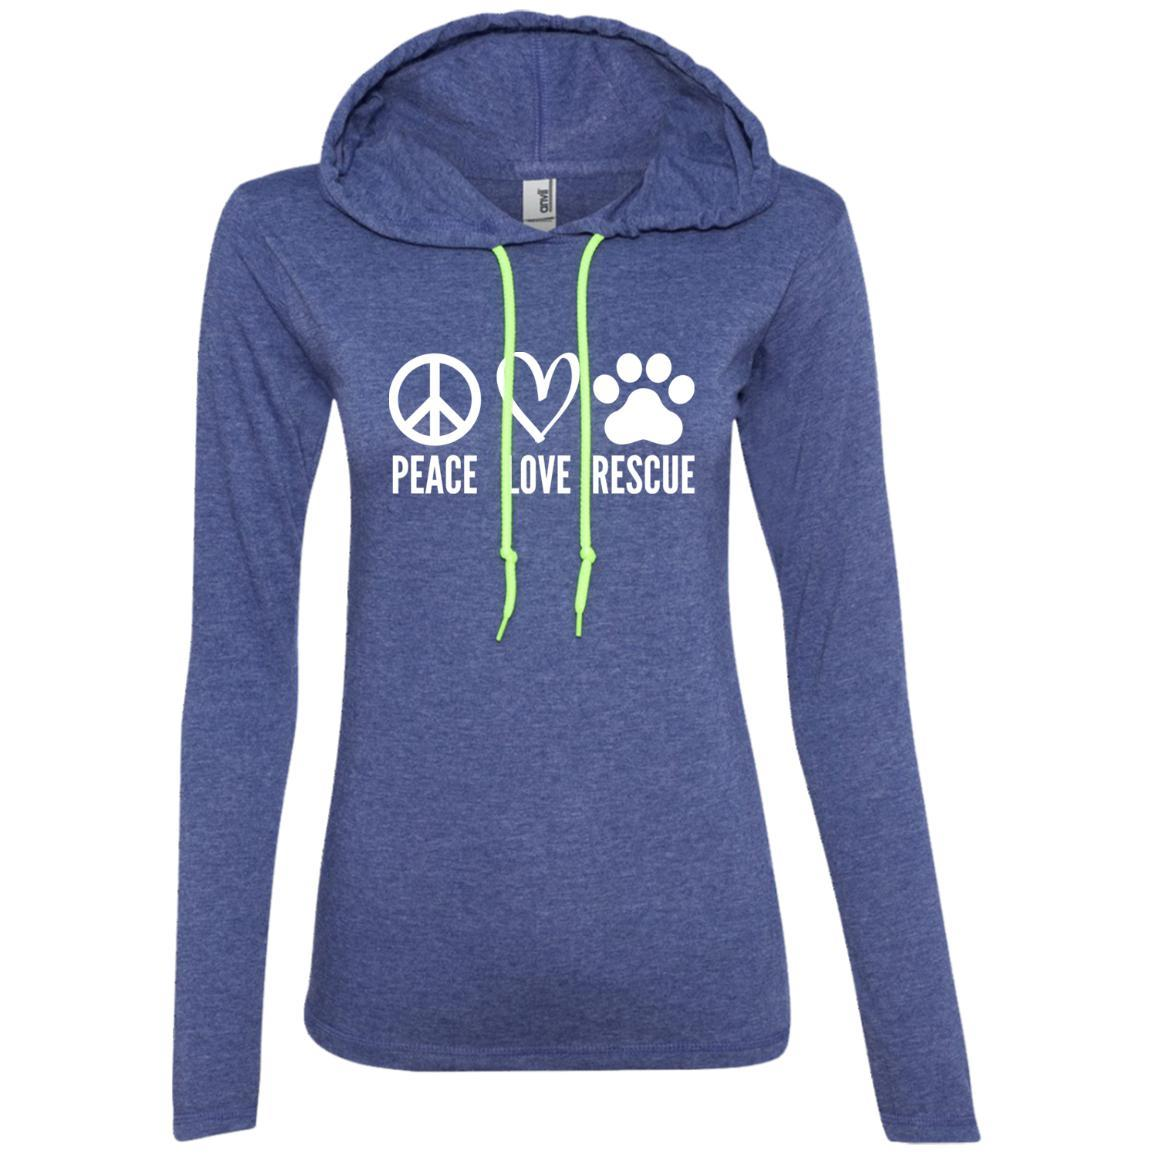 Peace, Love, Rescue Hooded Shirt For Women - Ohmyglad